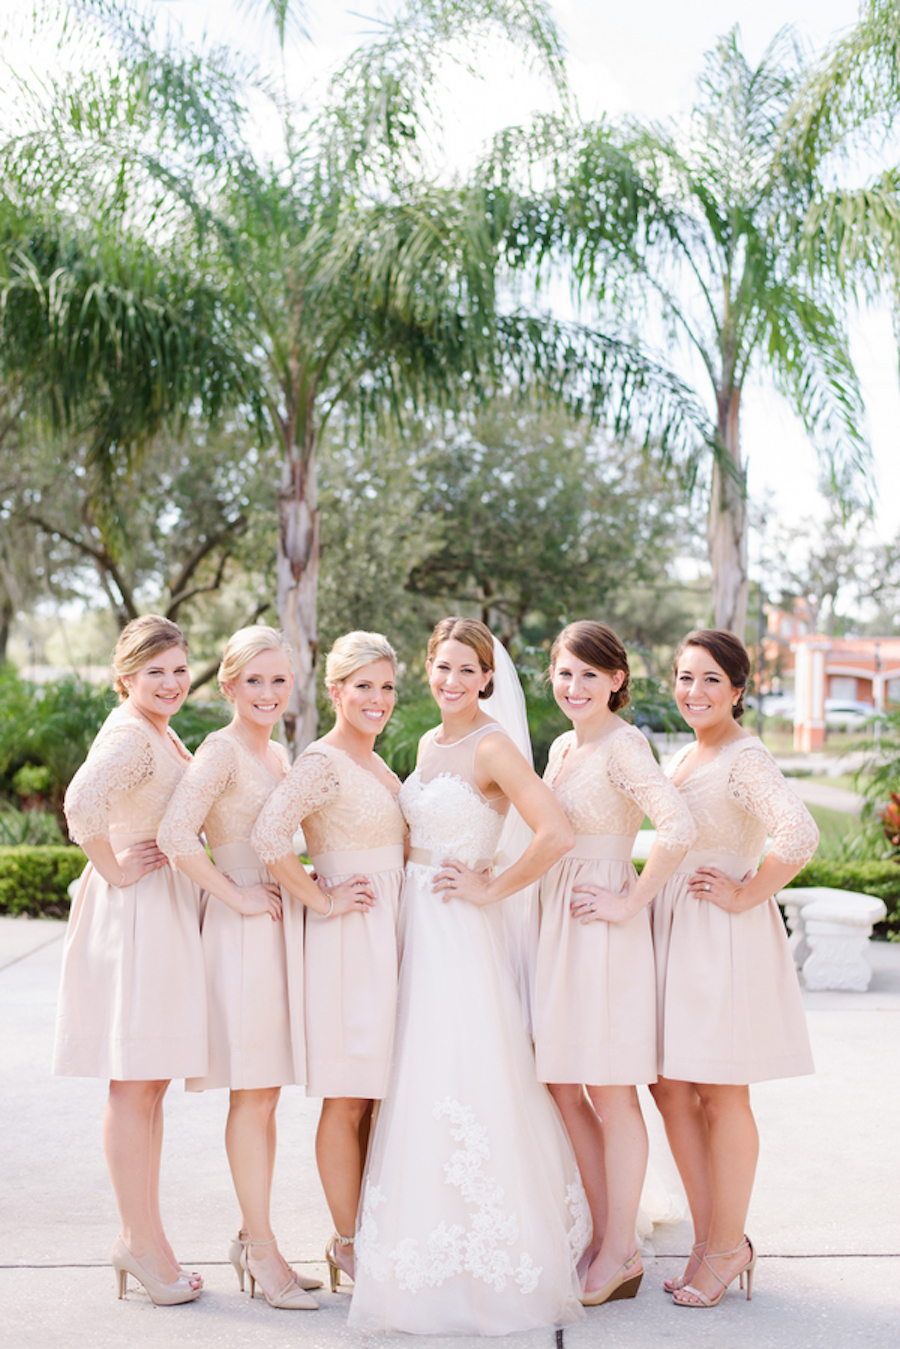 Bride and Bridesmaids Outdoor Bridal Portrait with Champagne Blush Dresses